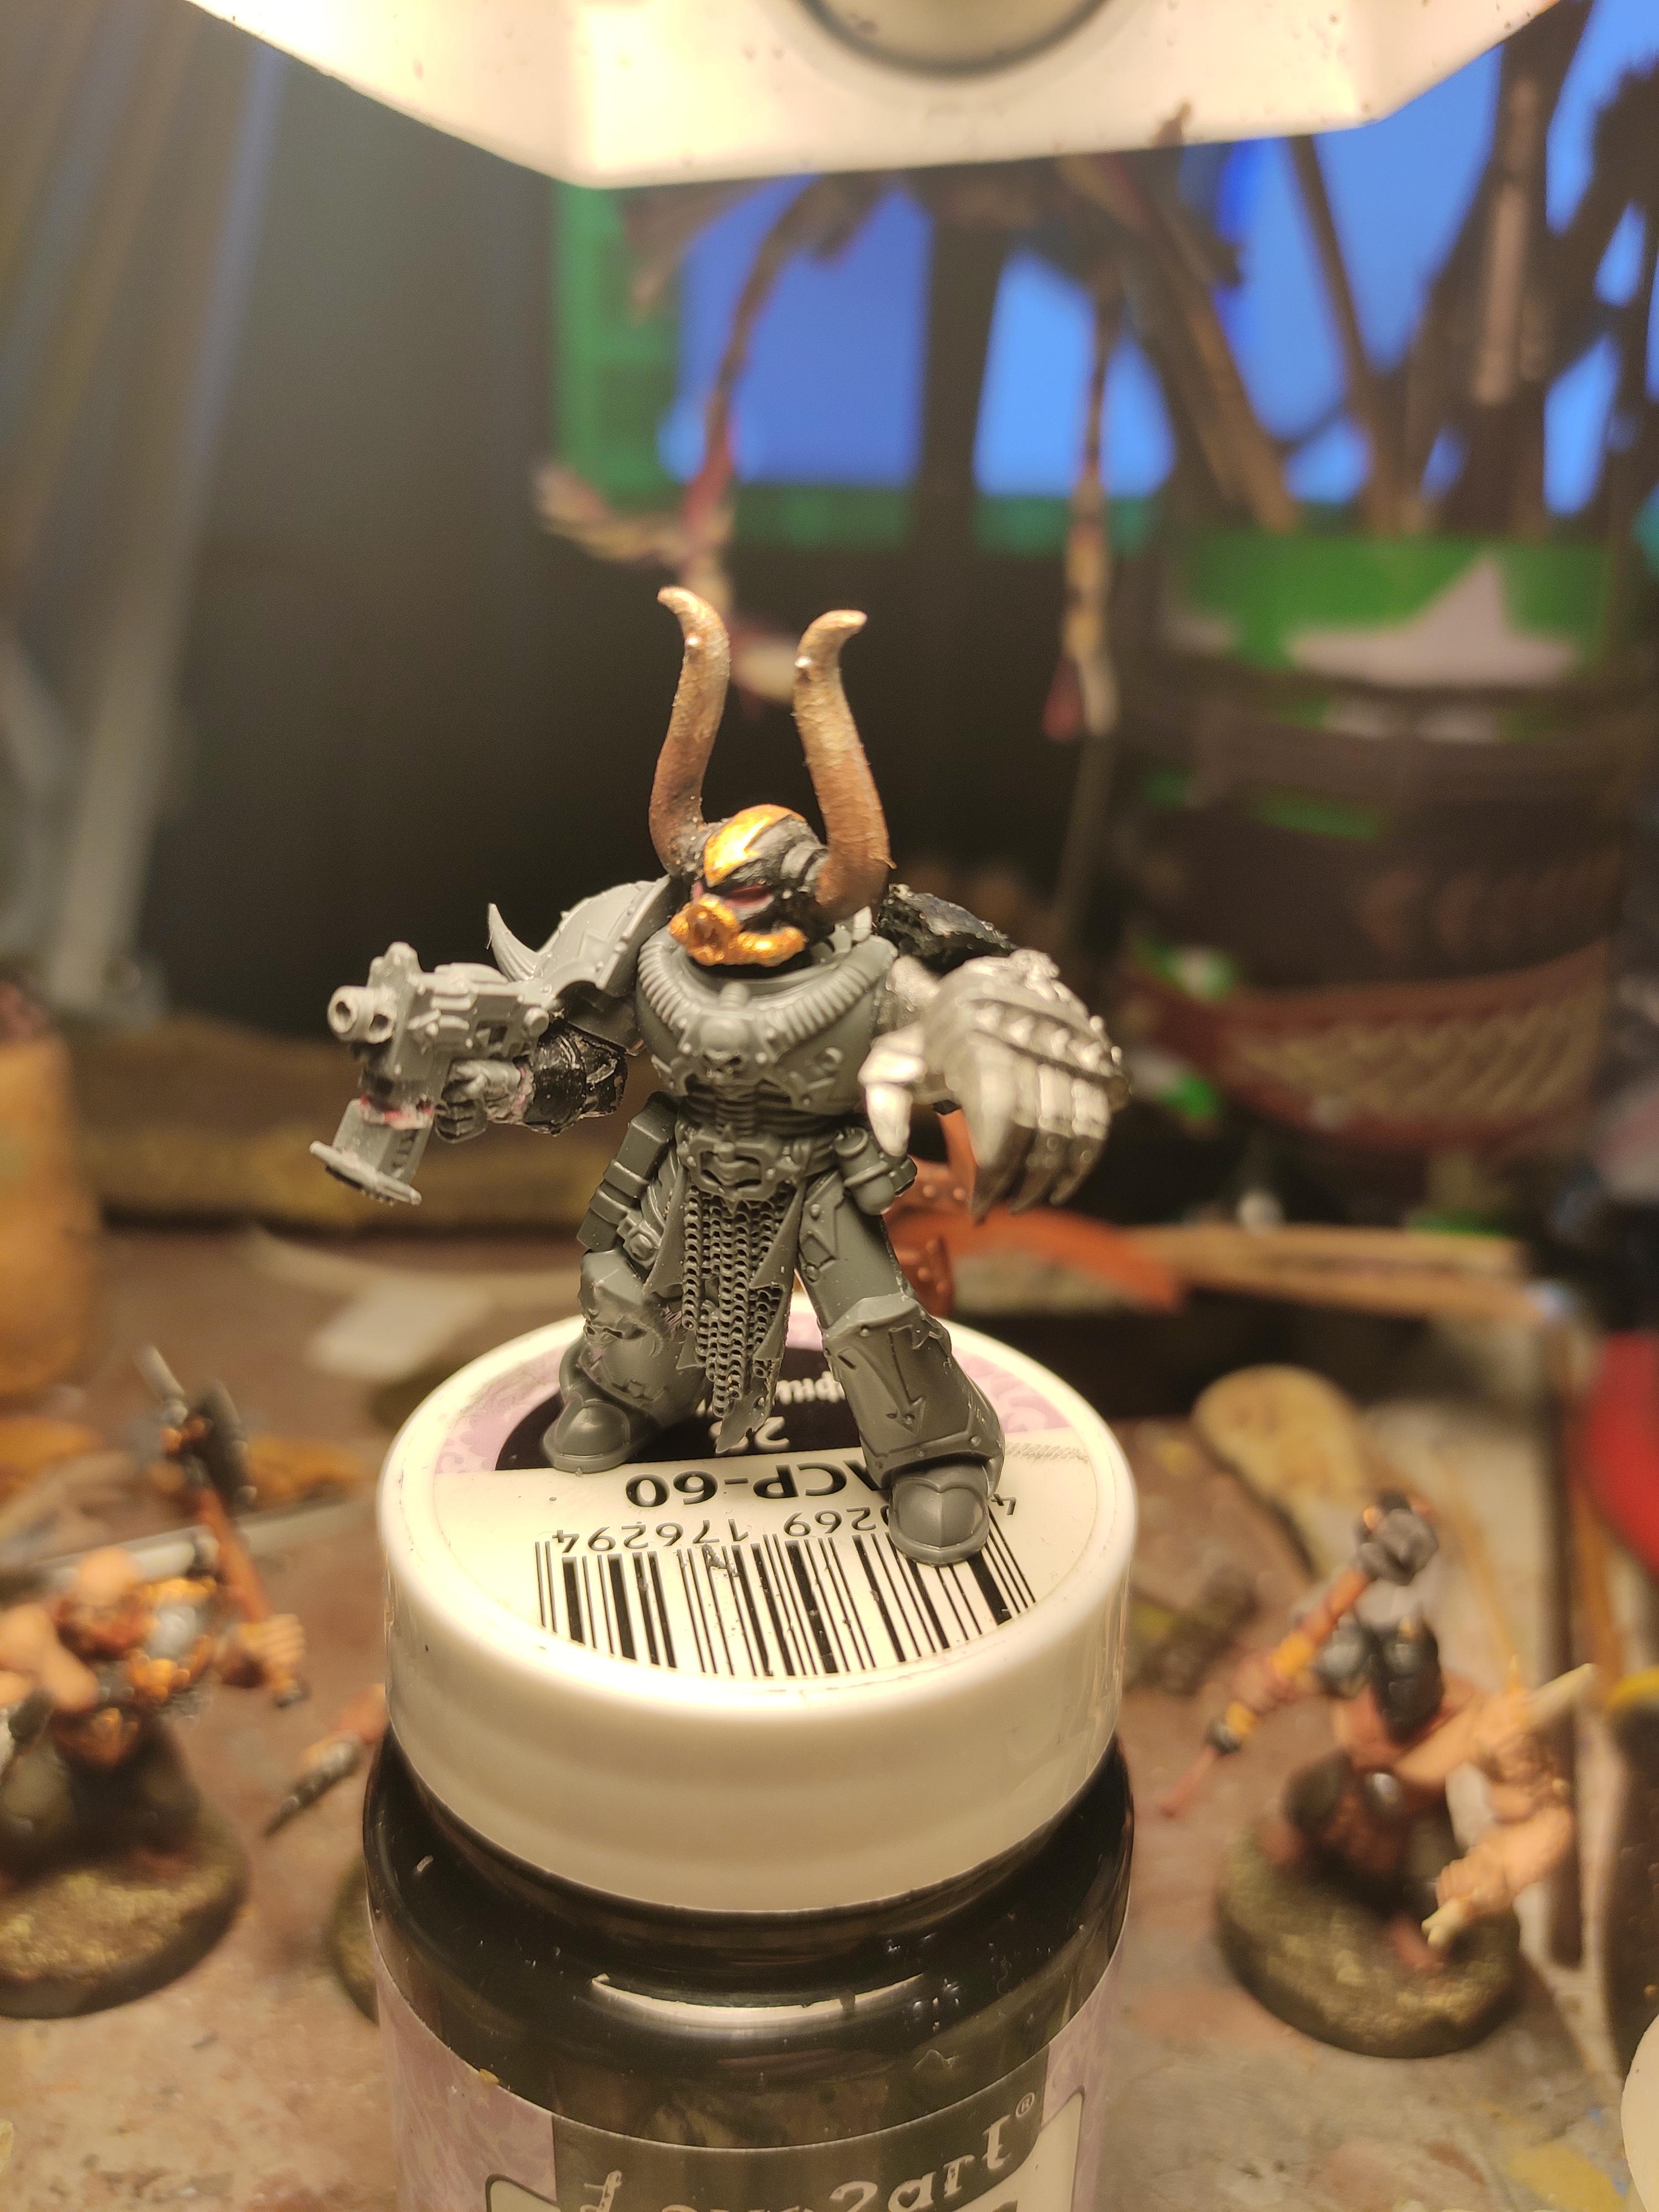 Blurred Photo, Boltpistol, Chaos, Chaos Space Marines, Conversion, Heresy, Heretic Astartes, Kitbash, Power Fist, Regiment, Shadowspear, Traitor Legions, Warhammer 40,000, Work In Progress